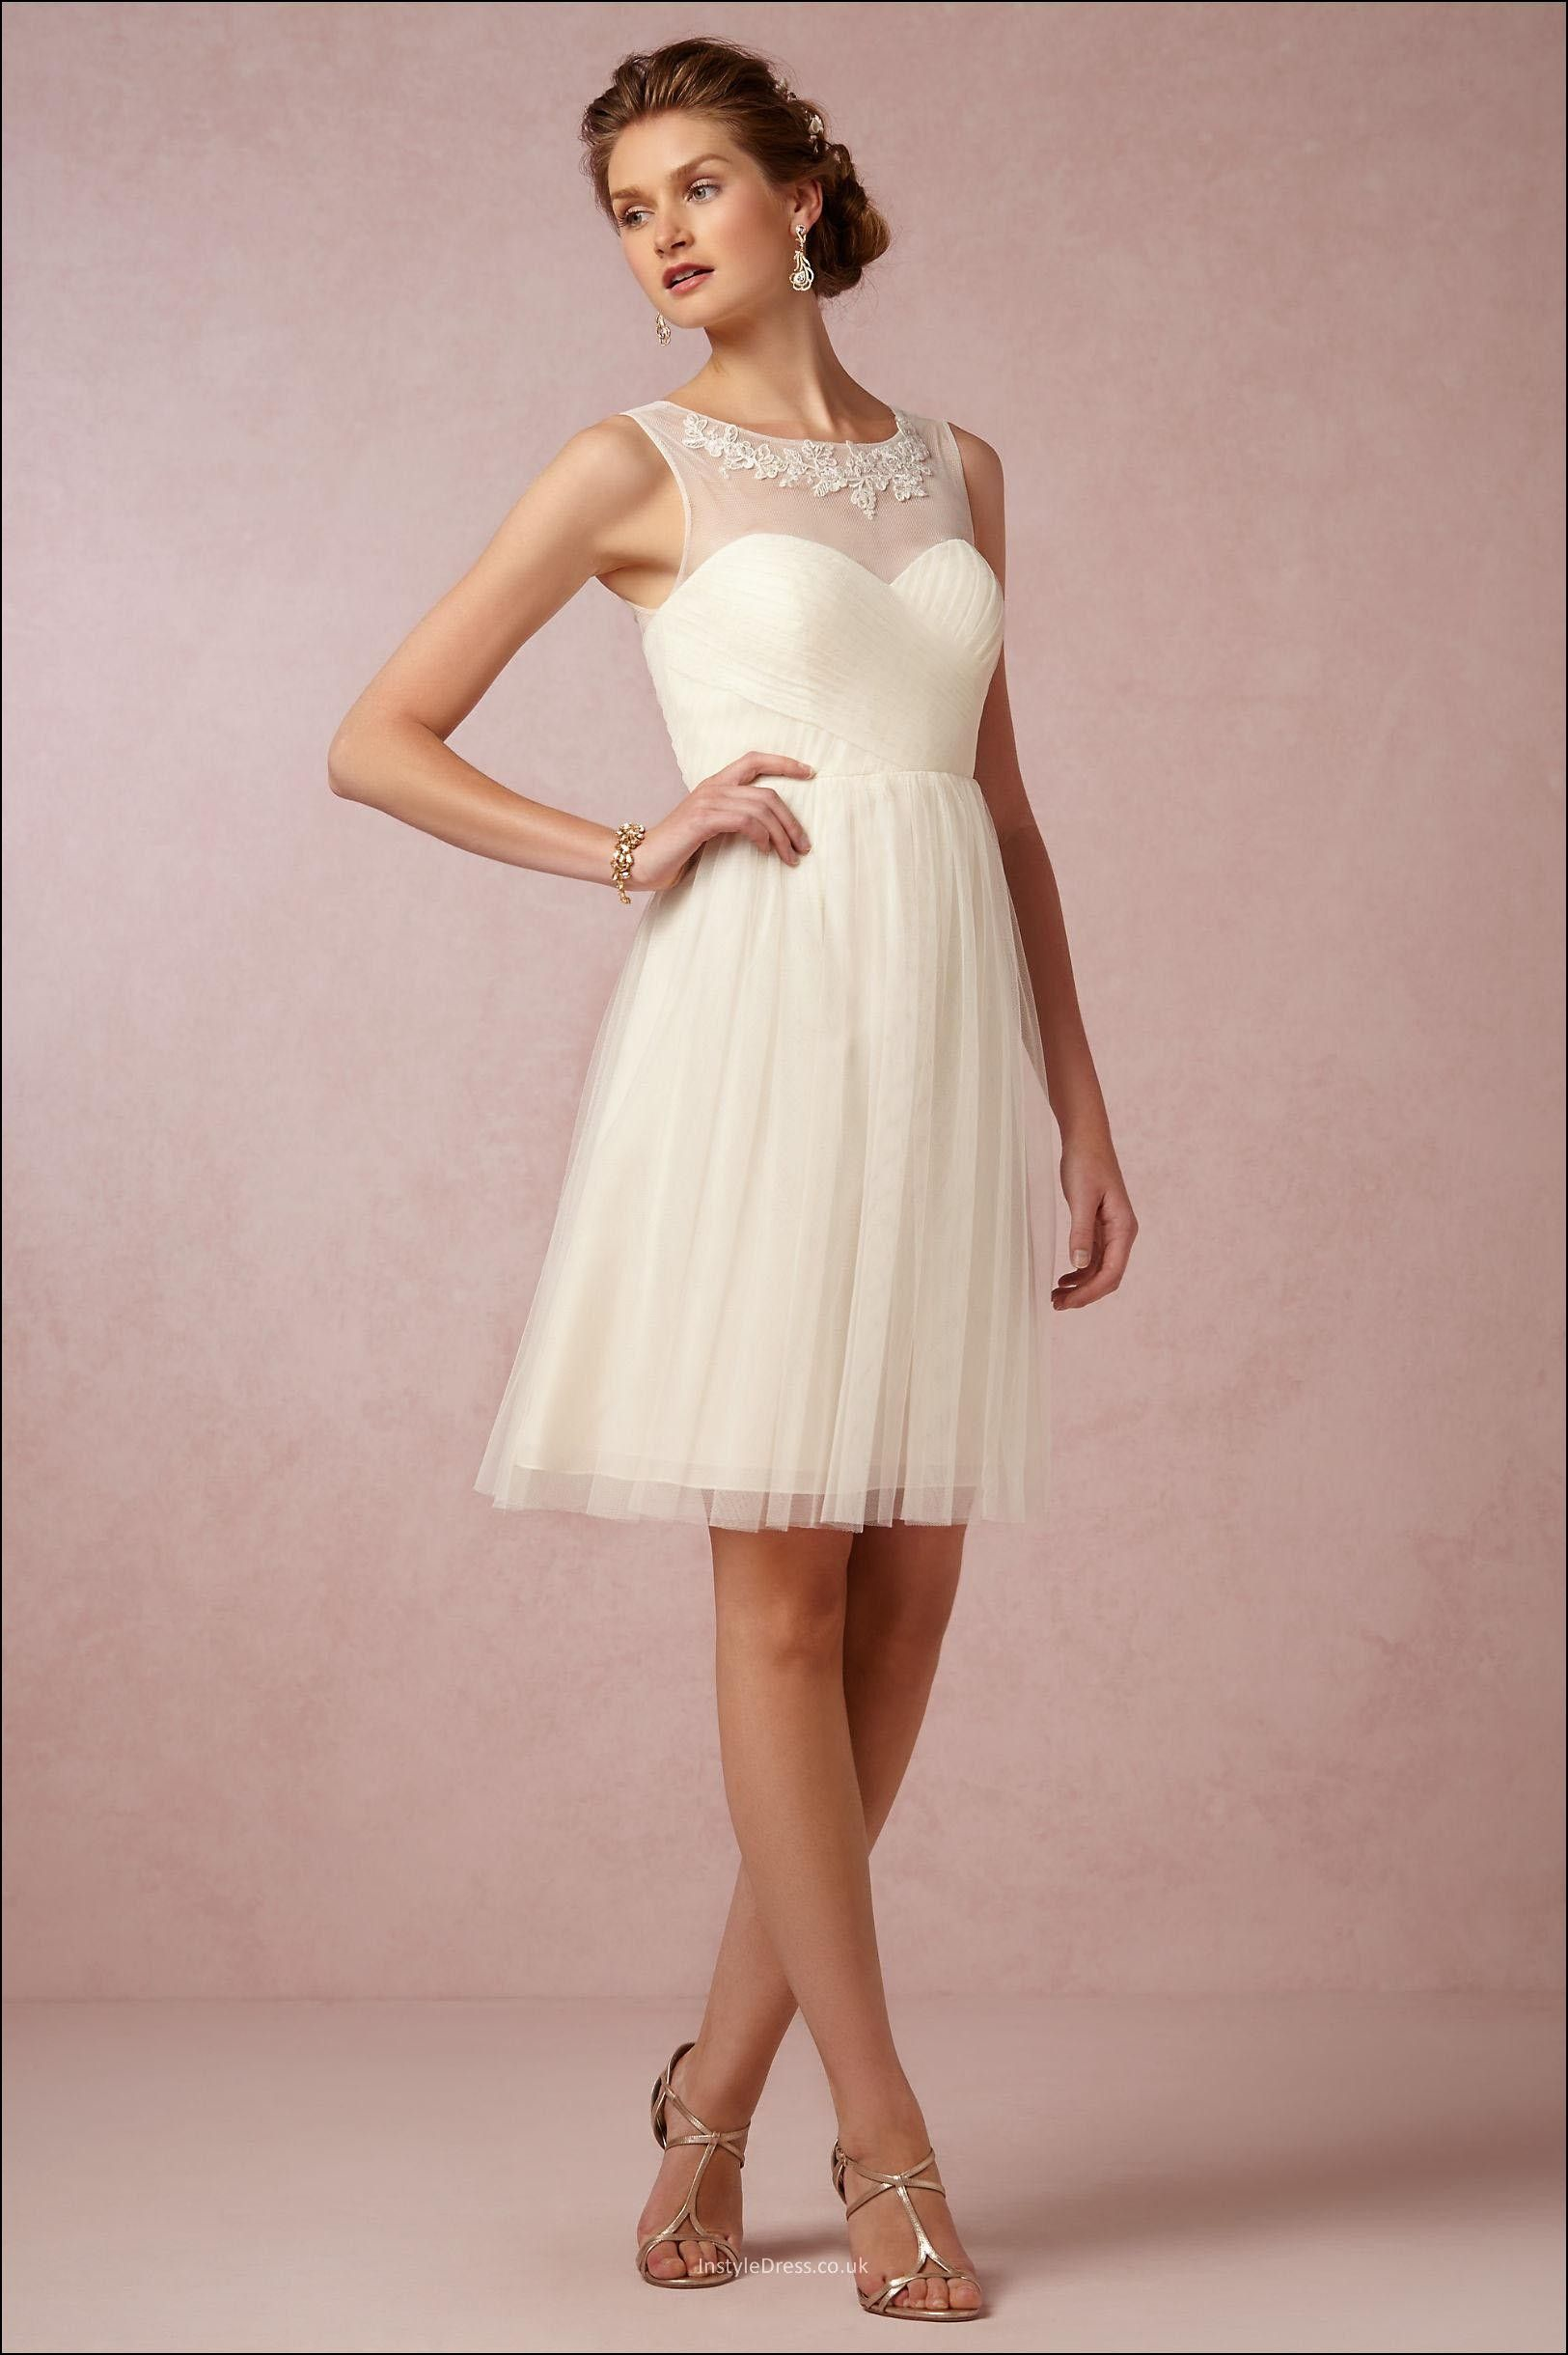 Cream short bridesmaid dresses dresses and gowns ideas pinterest